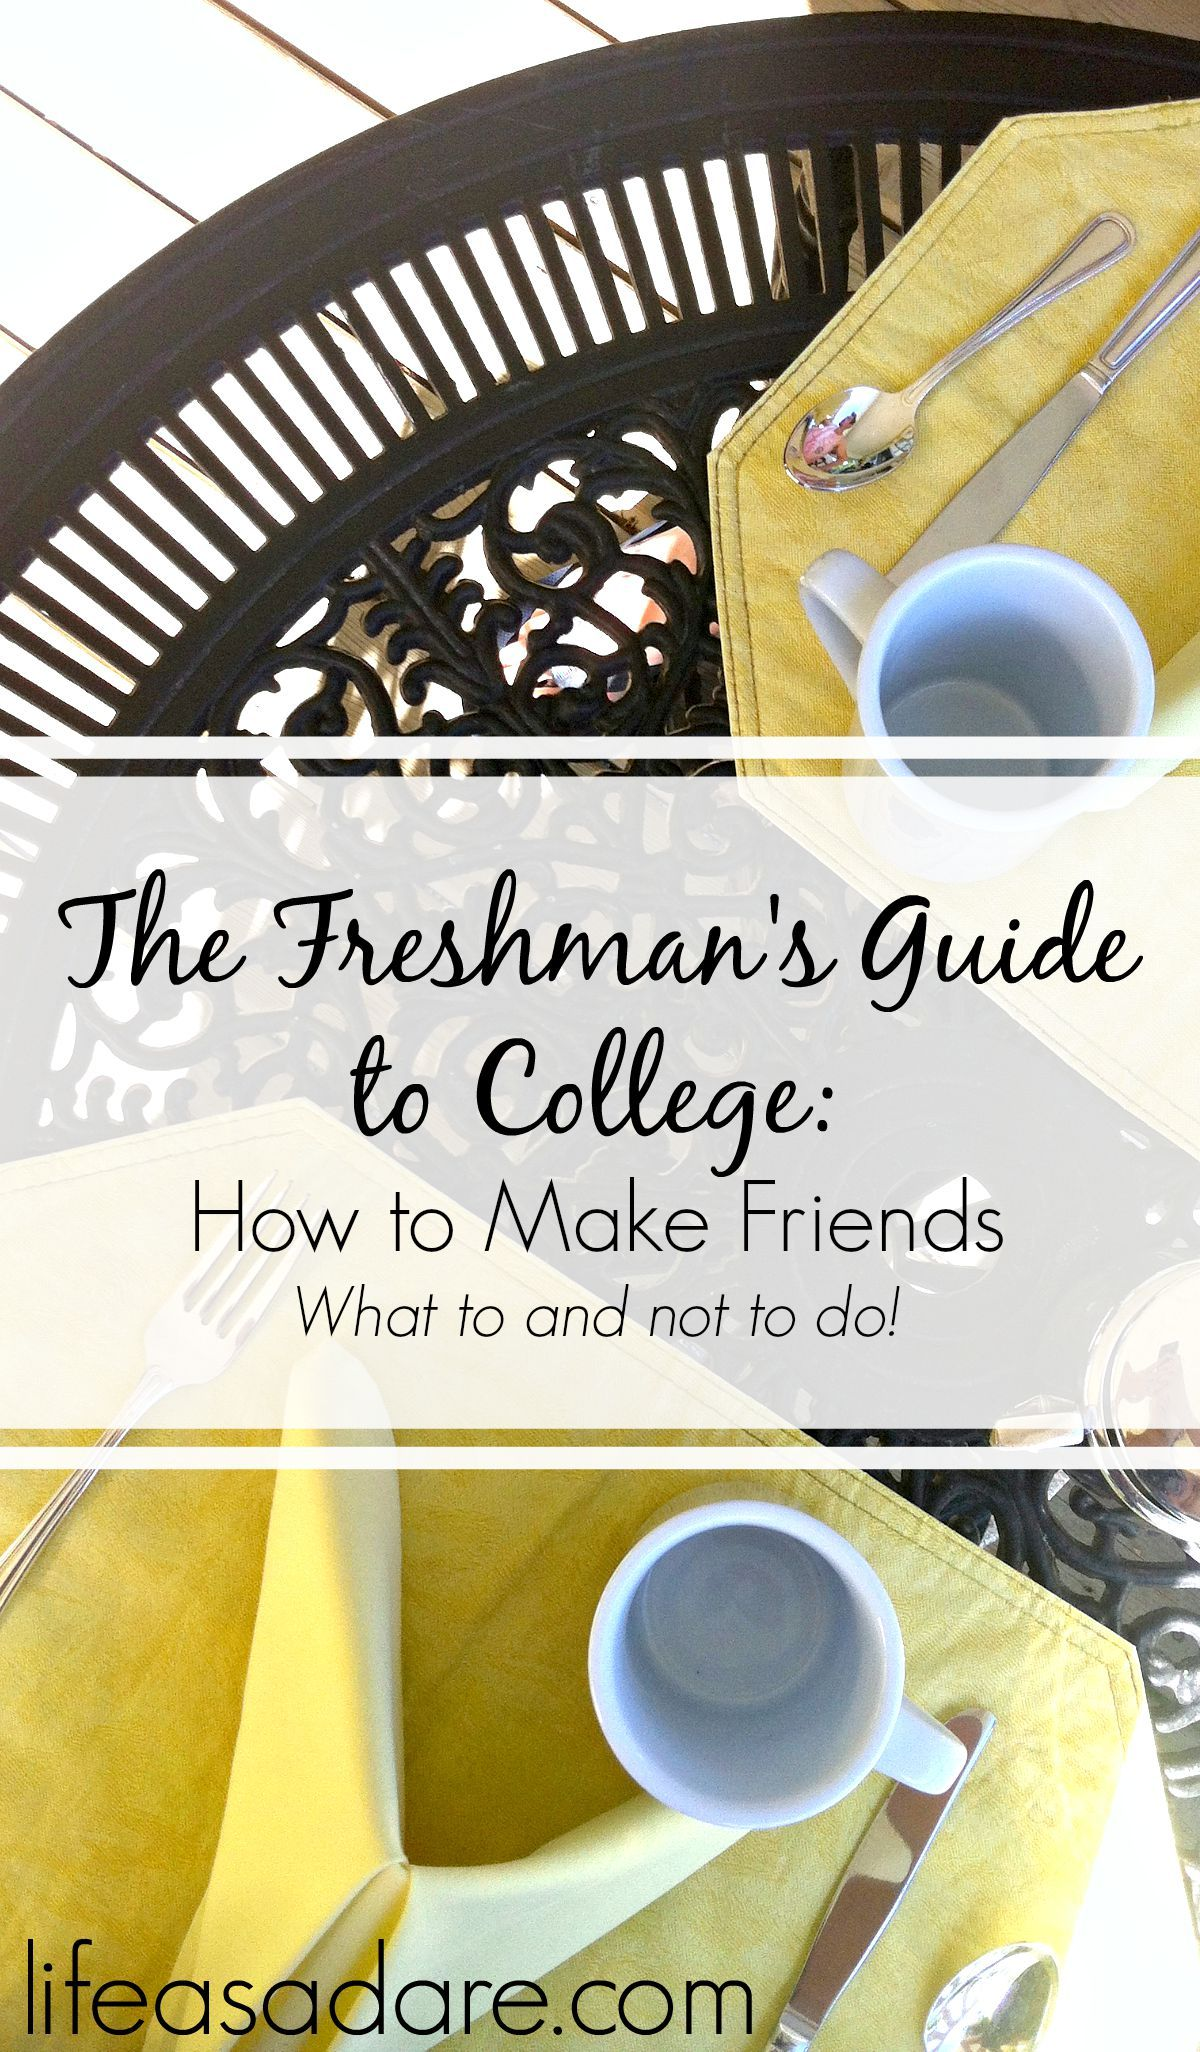 Making friends in college can be really tough at times Dont fear thoughthere are definitely things you can do to make it easier Here are some of my tips and tricks to mak...